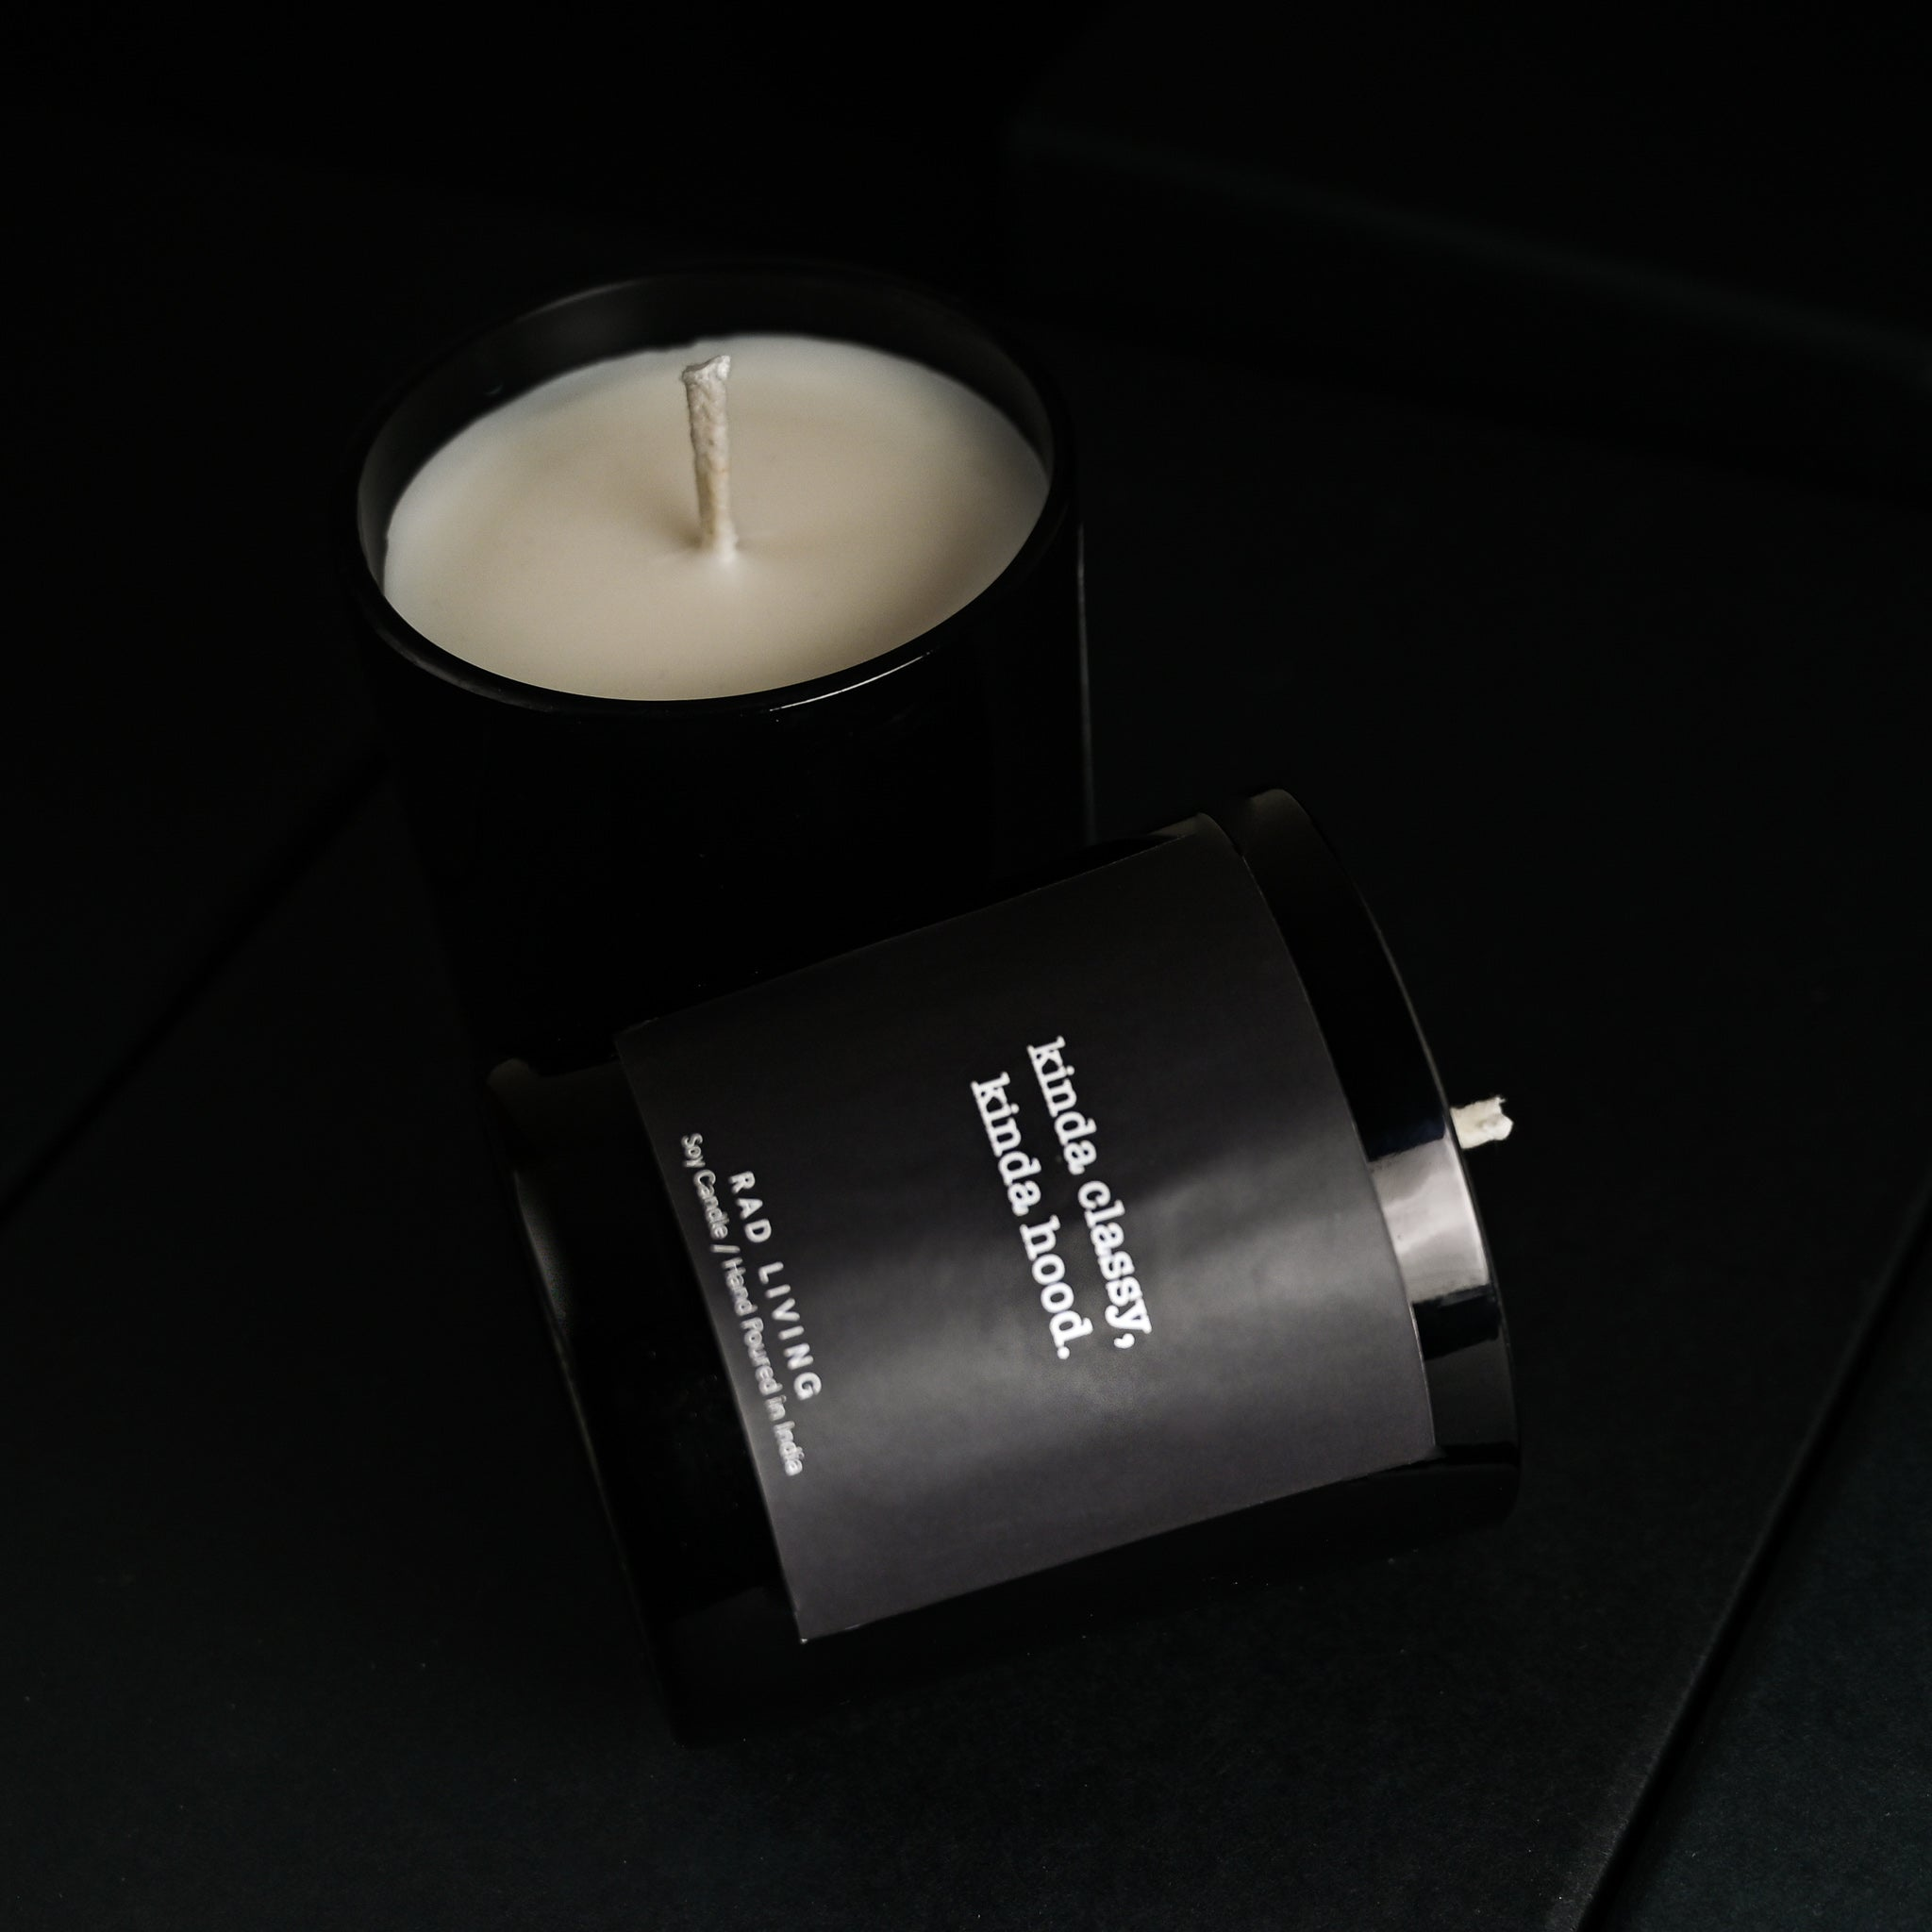 FLY #6 - Zesty Oud Scented Candle